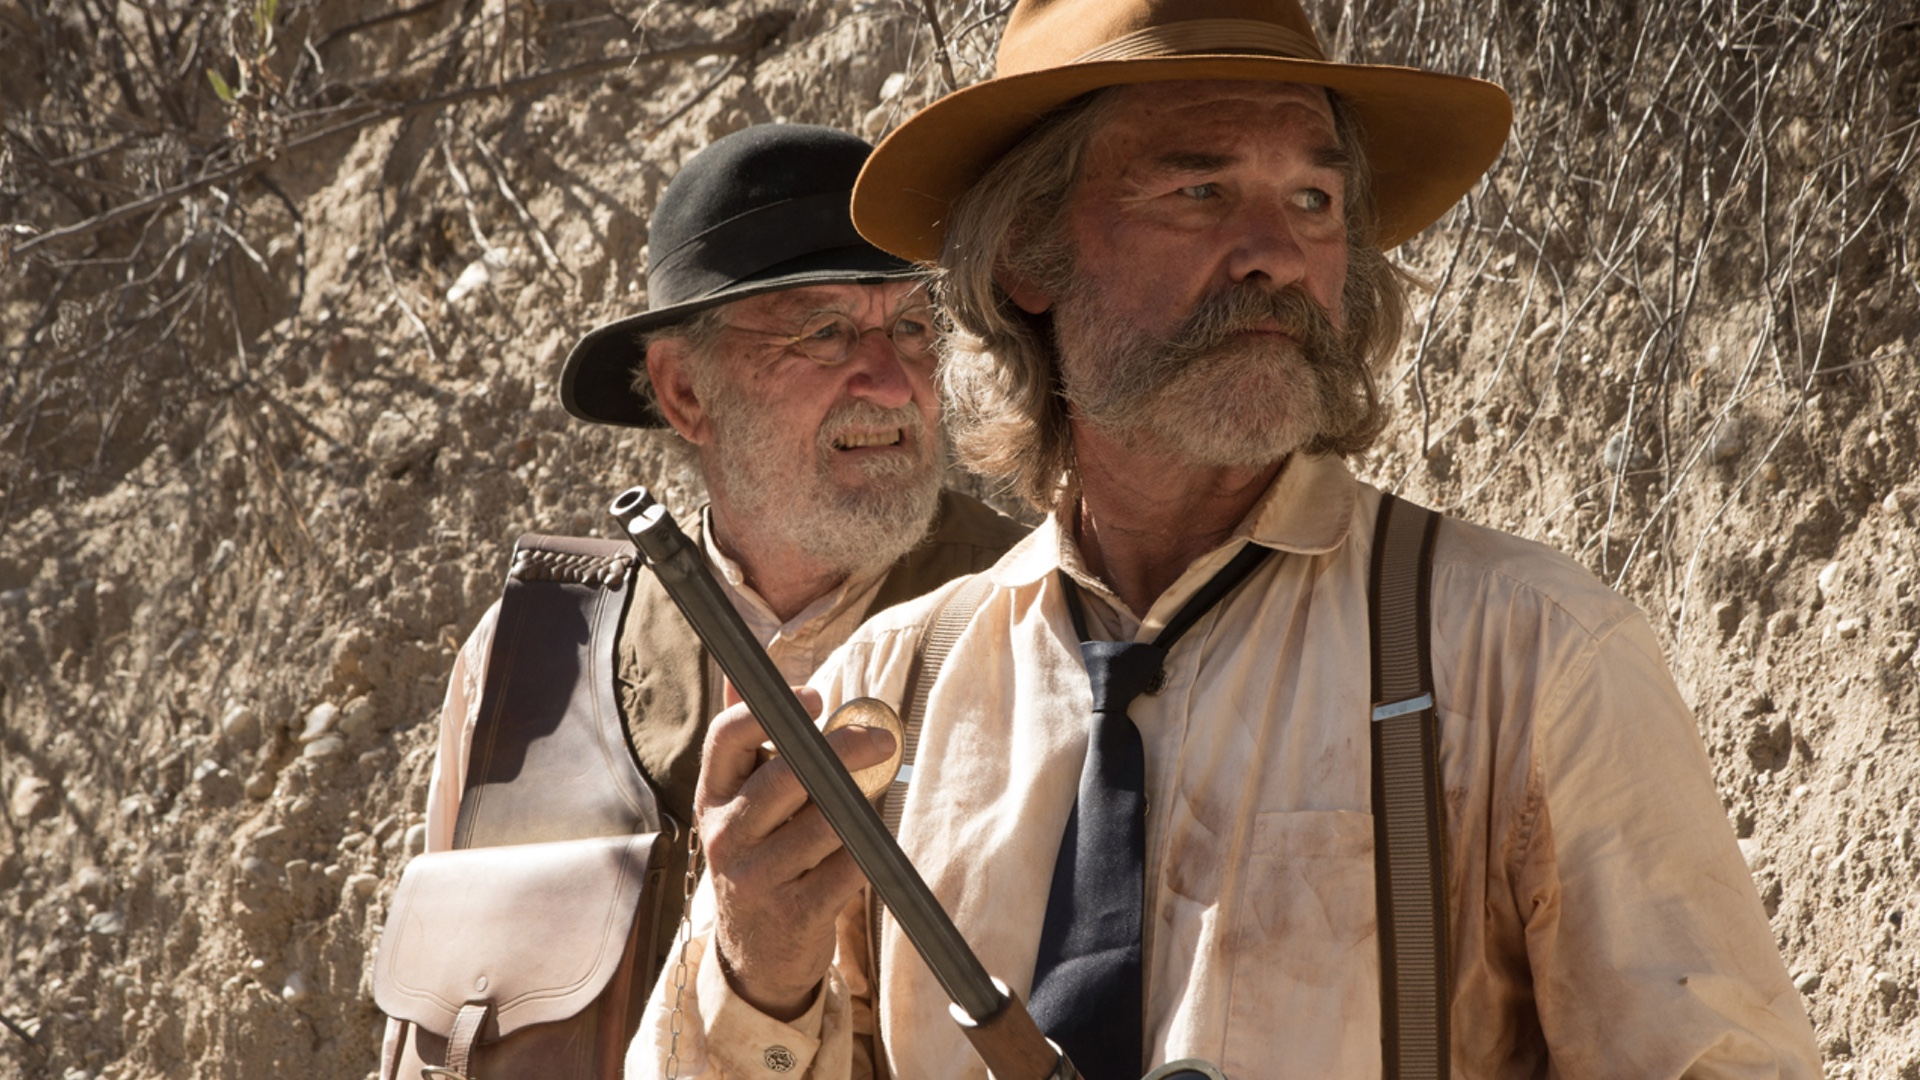 First of all, if you haven't seen writer and director S. Craig Zahler and  actor Kurt Russell's Bone Tomahawk yet, you need to watch that movie!